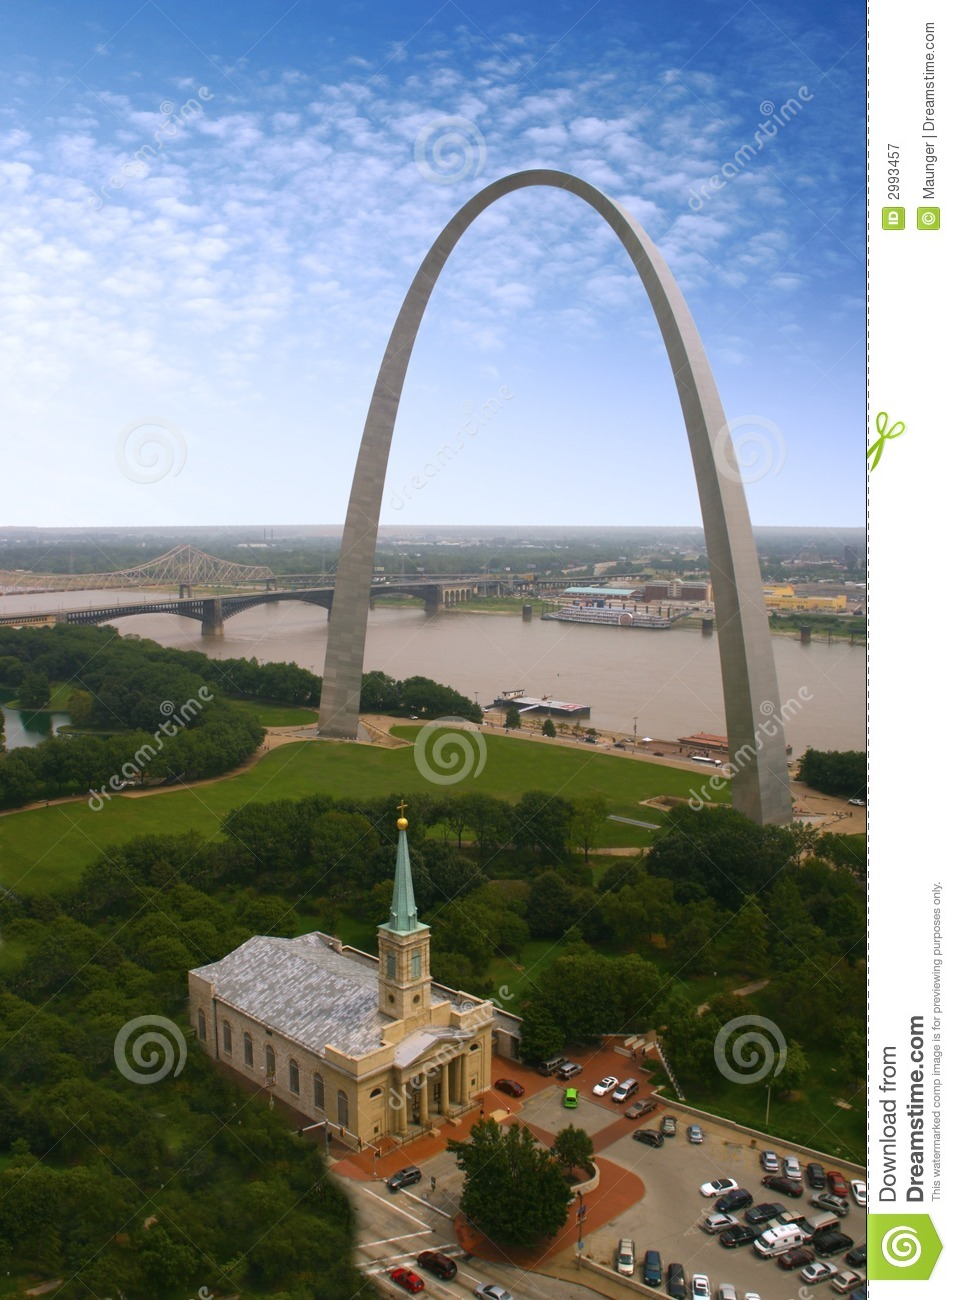 Arco de St. Louis - Jefferson